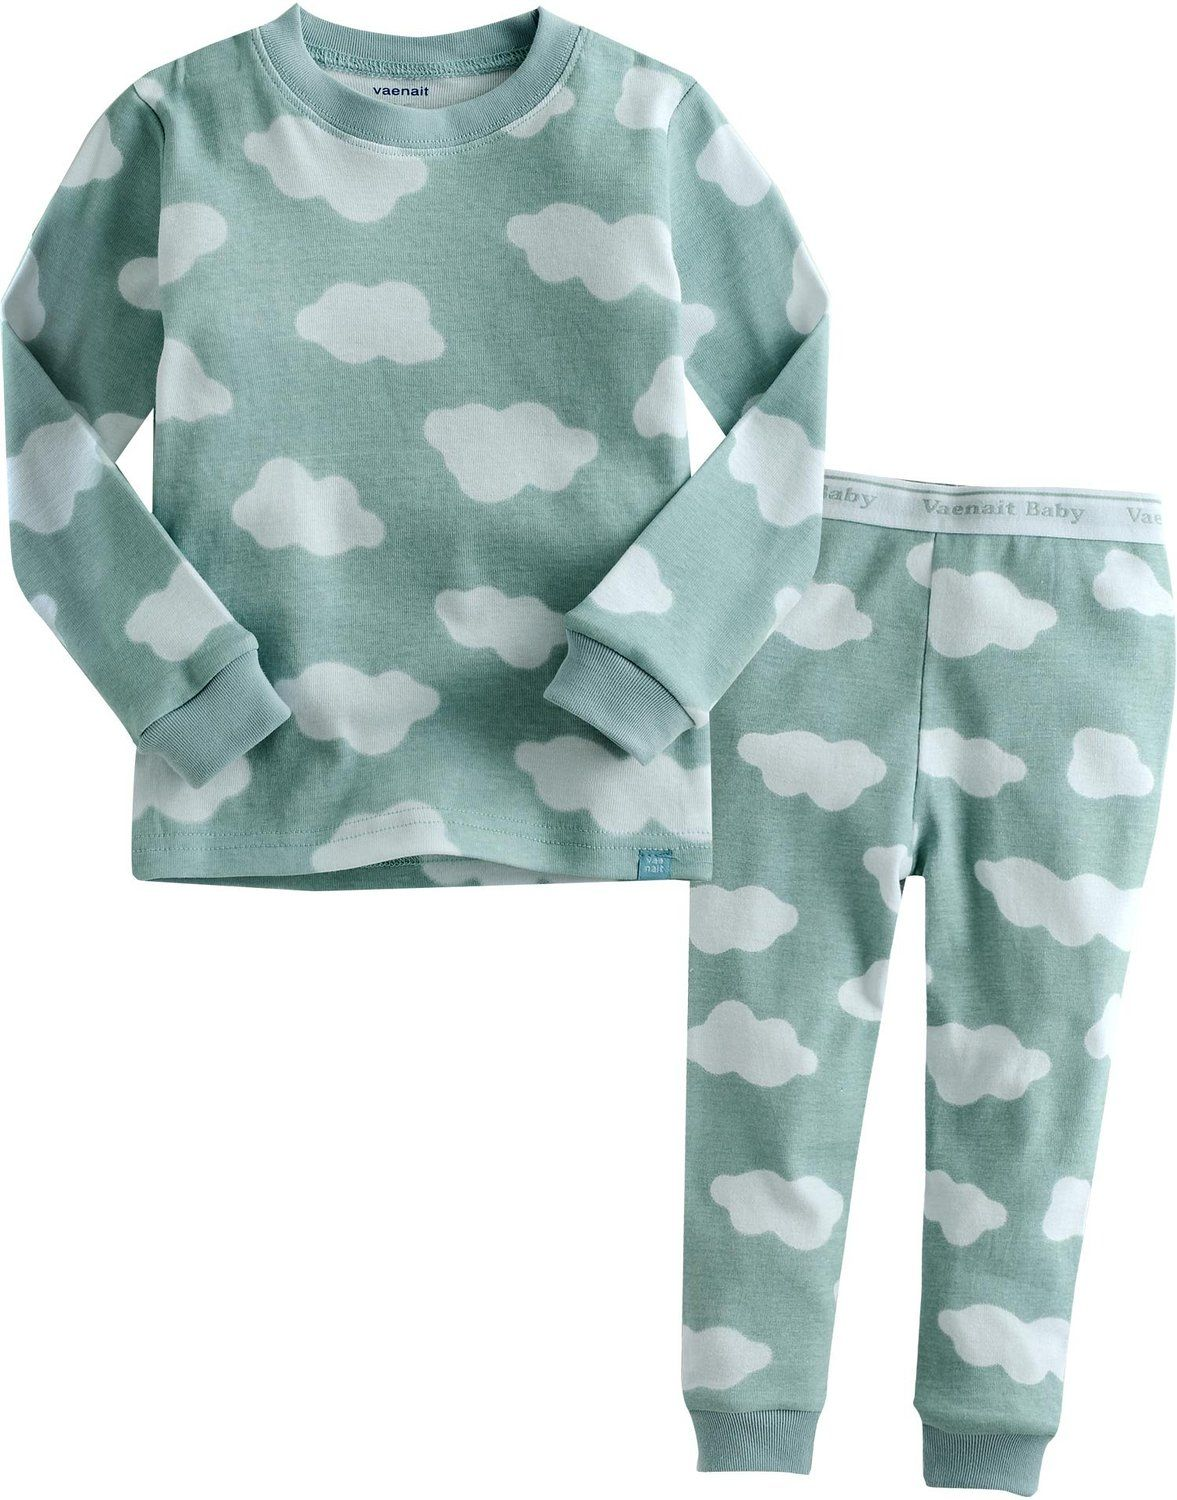 226911a079 Amazon.com  Vaenait Baby 12M-7T Kids Boys Sleepwear Pajama Top Bottom 2  Pieces Set Long Cloud  Clothing